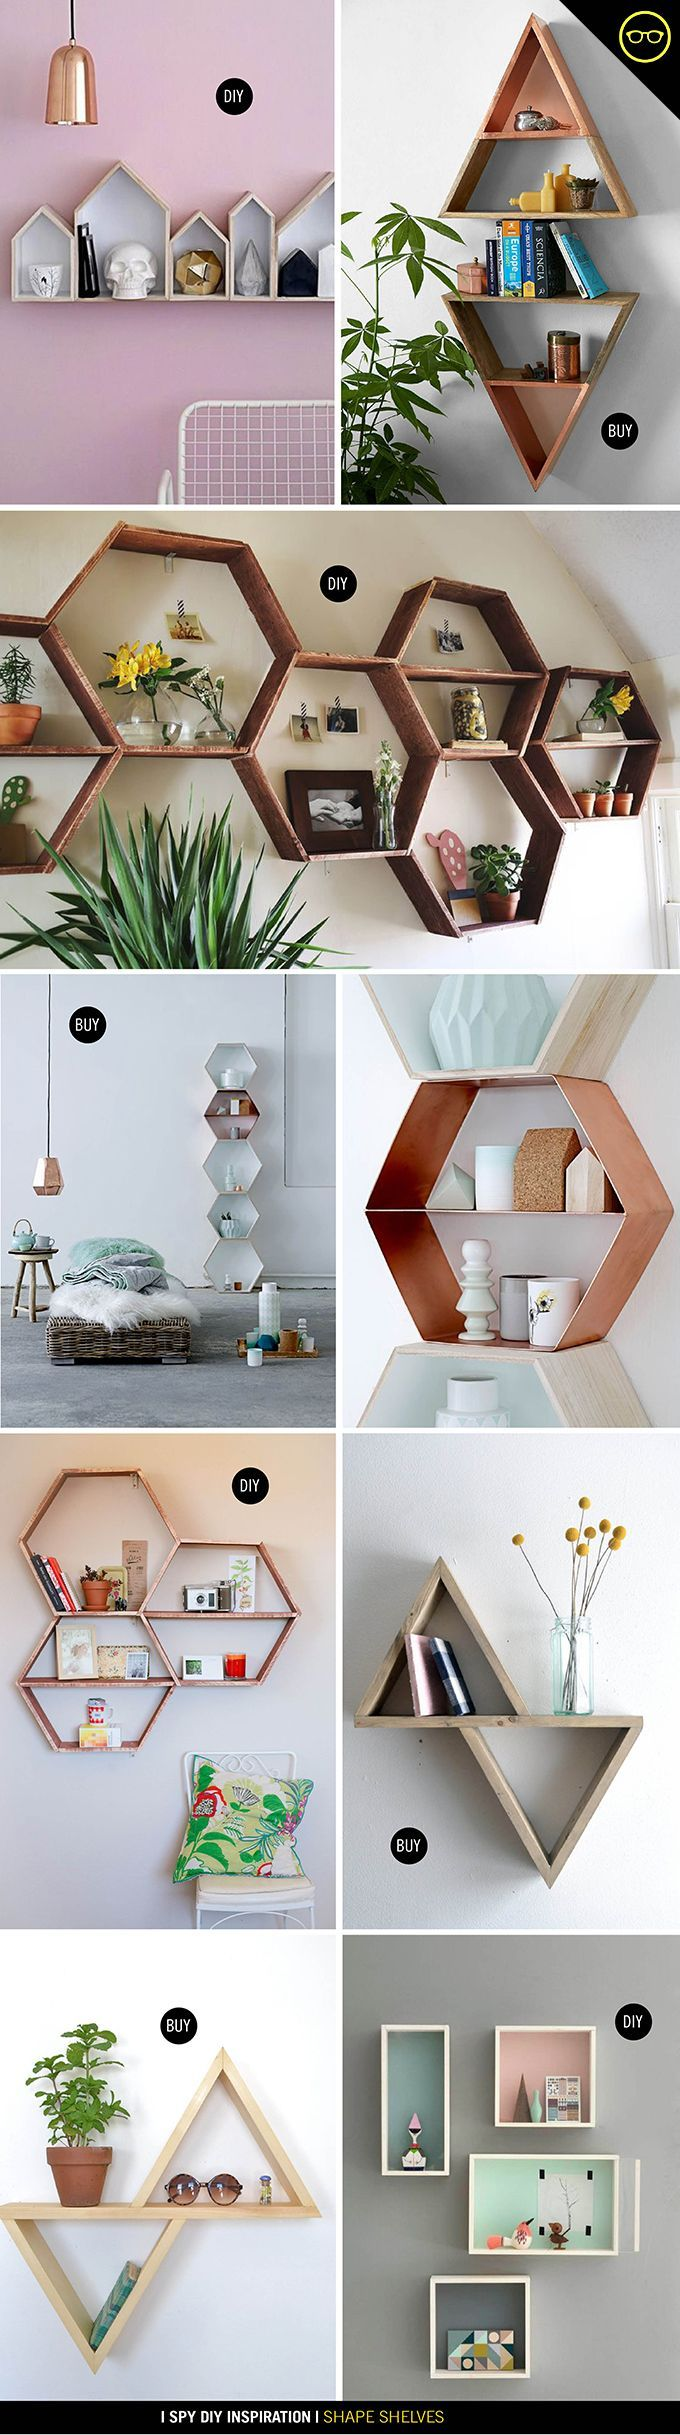 awesome INSPIRATION | SHAPE SHELVES by http://www.tophome-decorations.xyz/bedroom-designs/inspiration-shape-shelves/